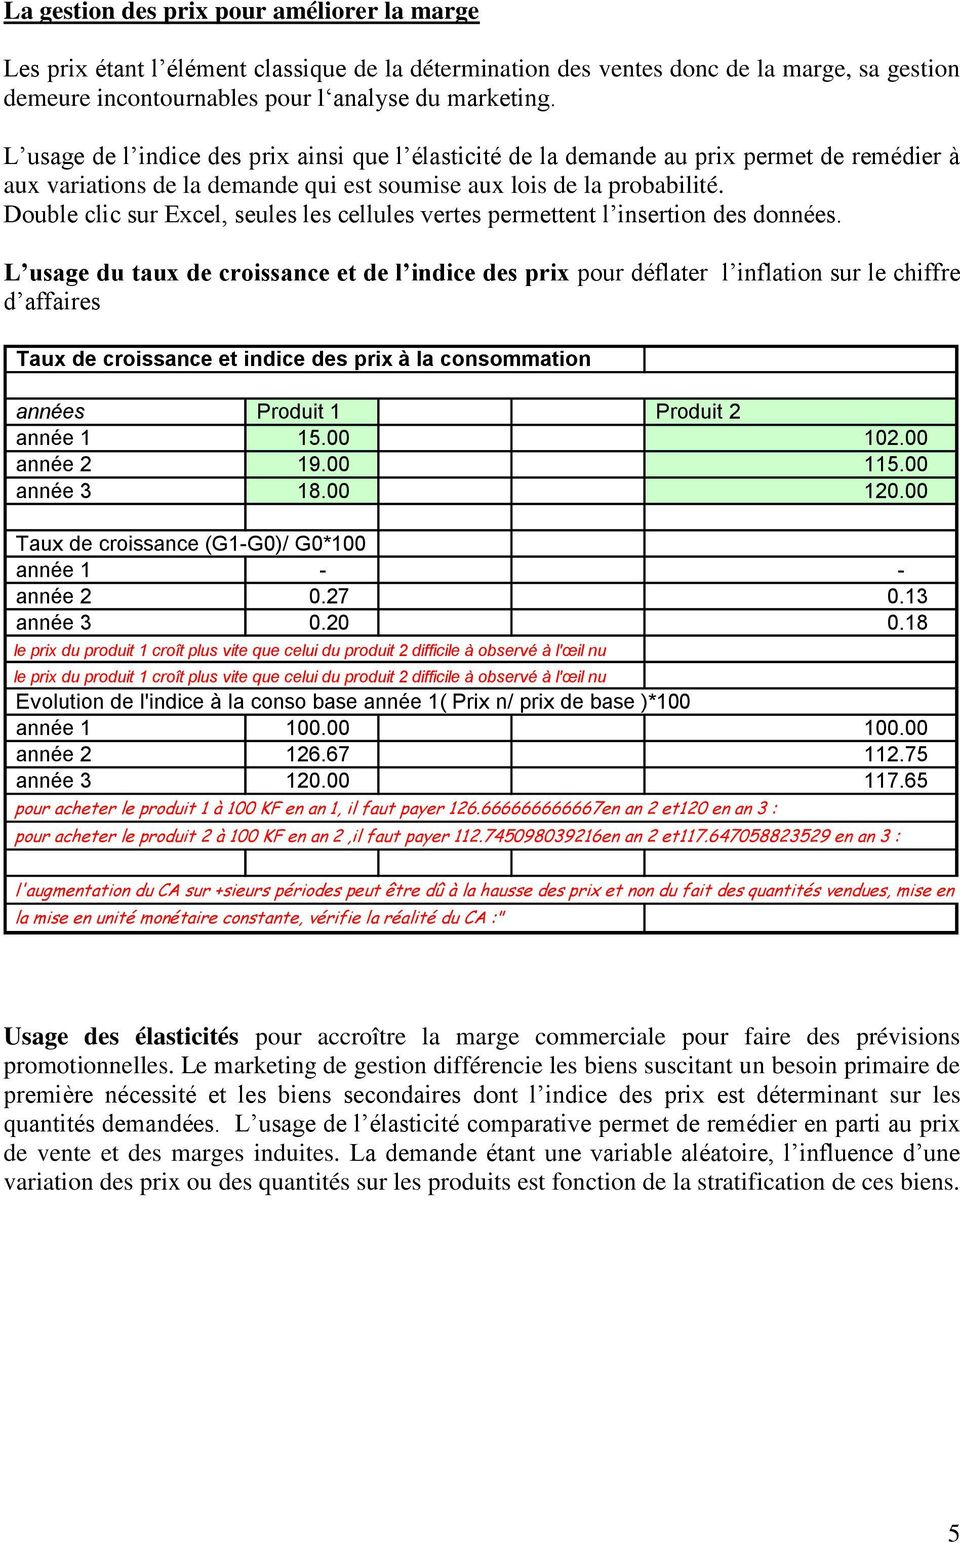 cours de gestion commerciale et marketing pdf